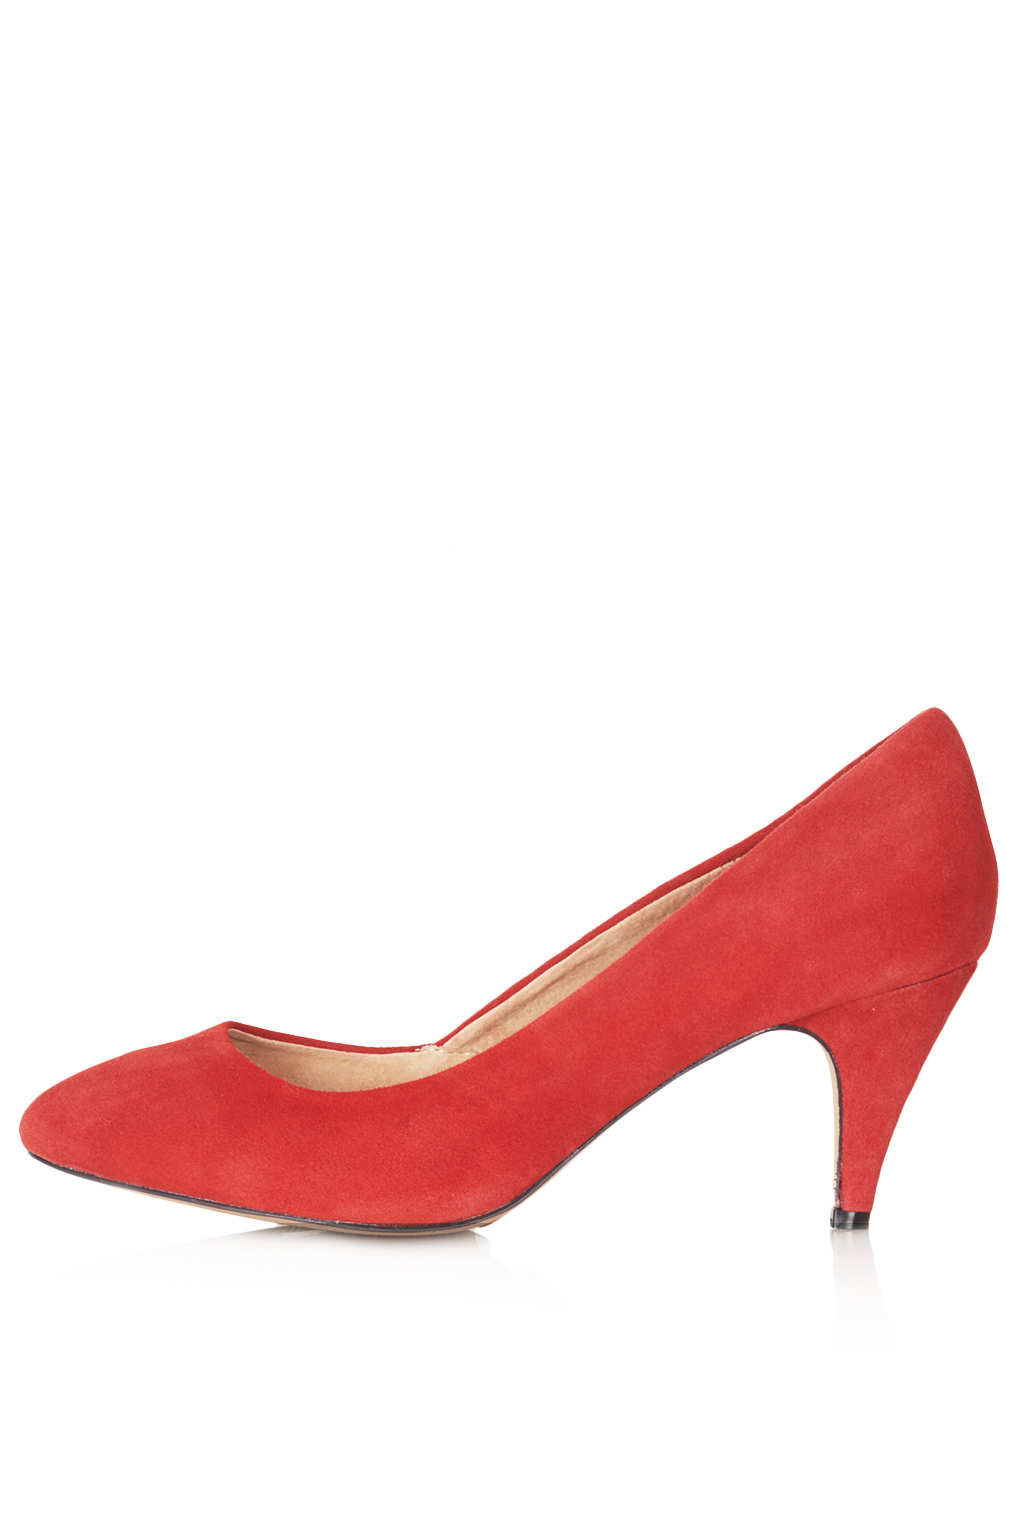 Topshop Maple Mid Heel Leopard Courts in Red | Lyst